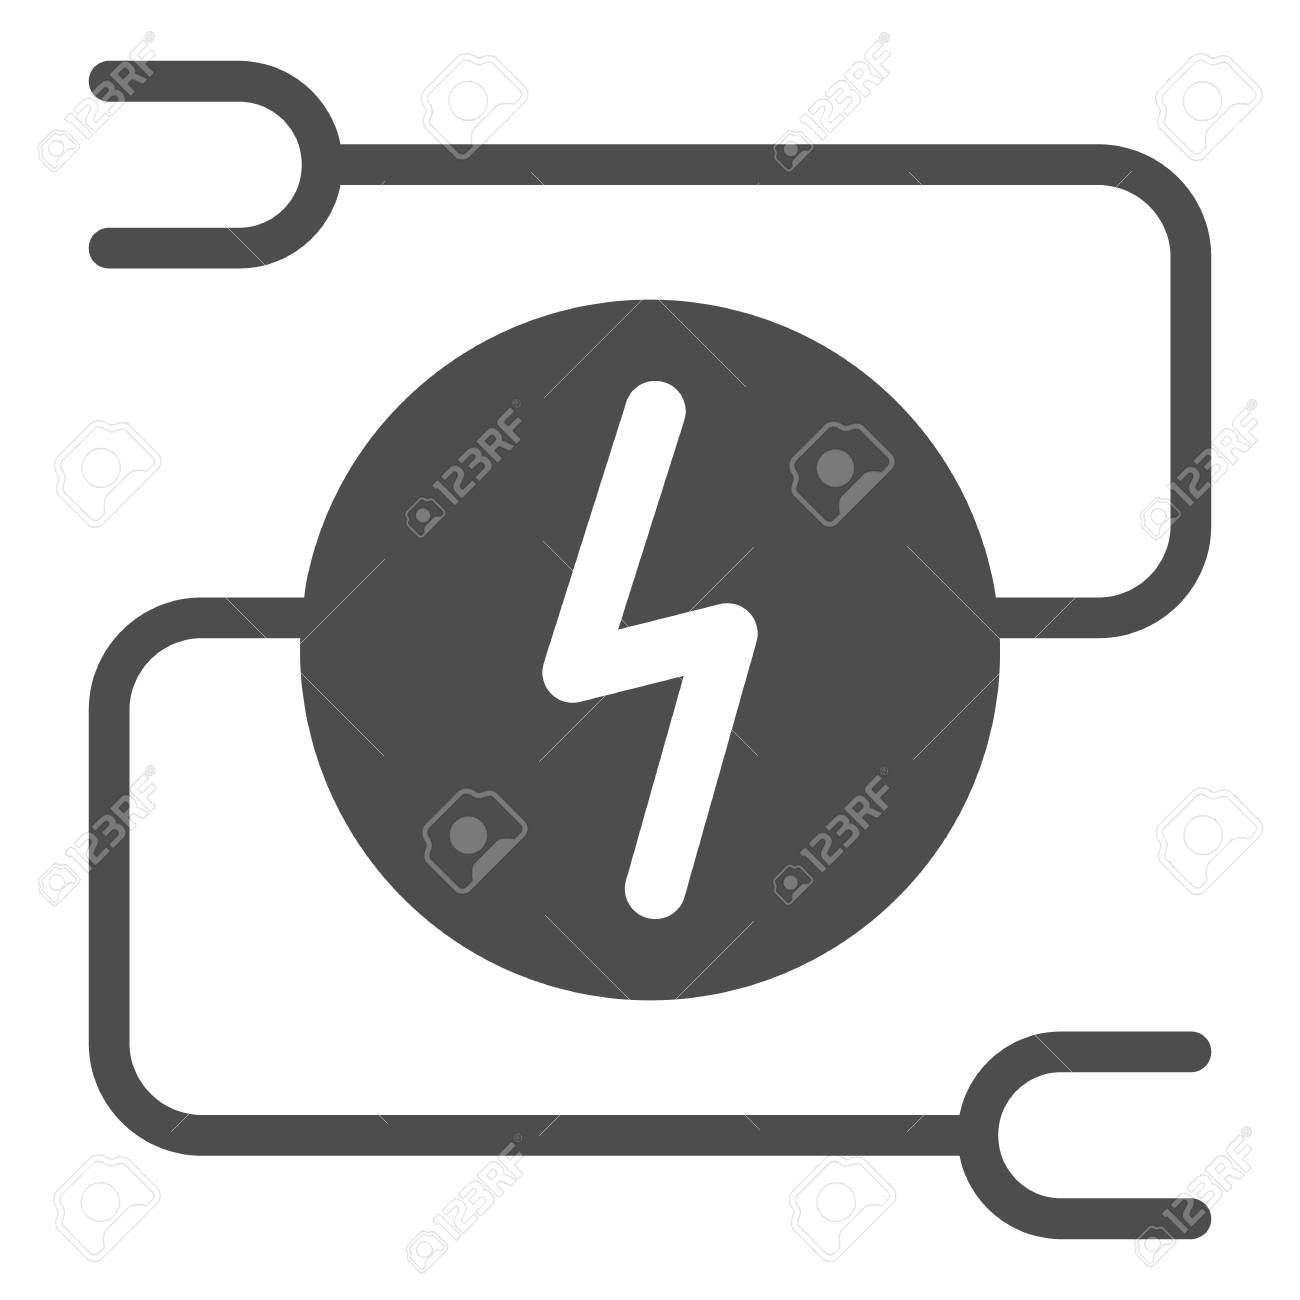 Electrical wiring solid icon. Car adapter vector illustration isolated on